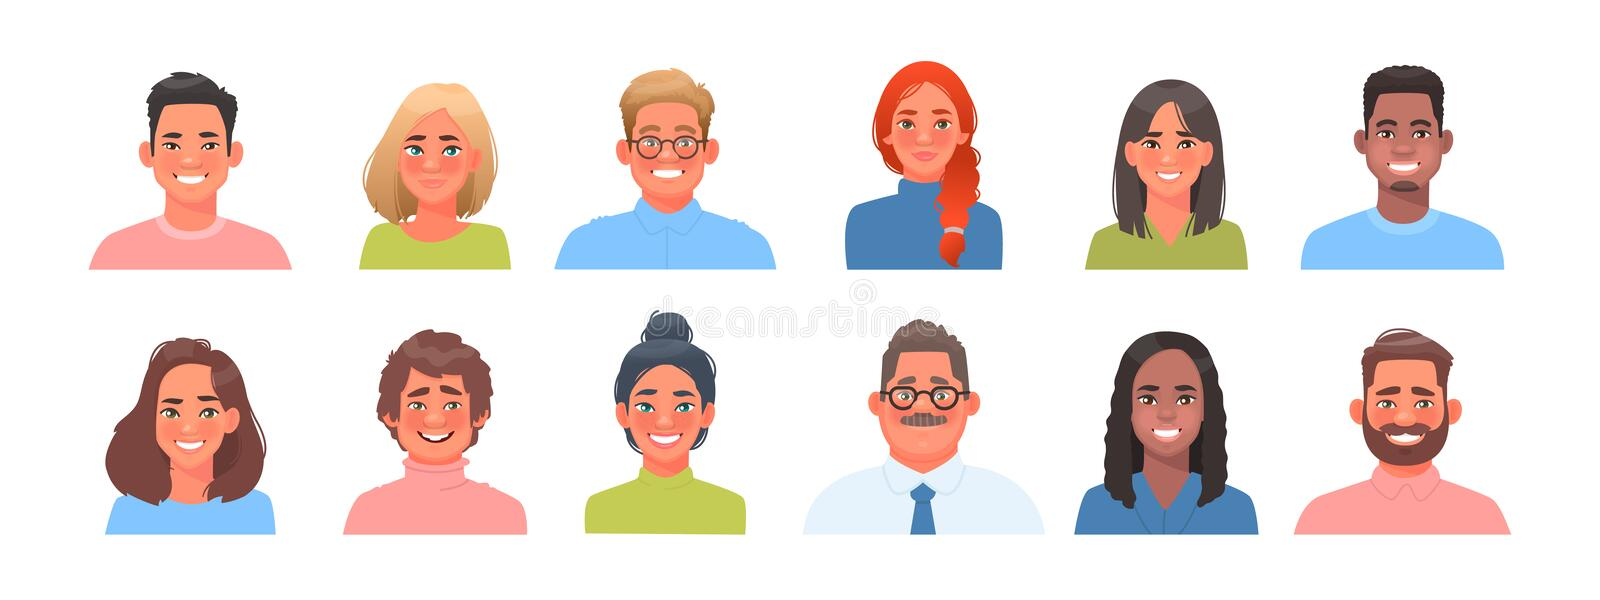 Set of avatars of characters of business men and women of different nationalities. Collection of portraits of multicultural people royalty free illustration